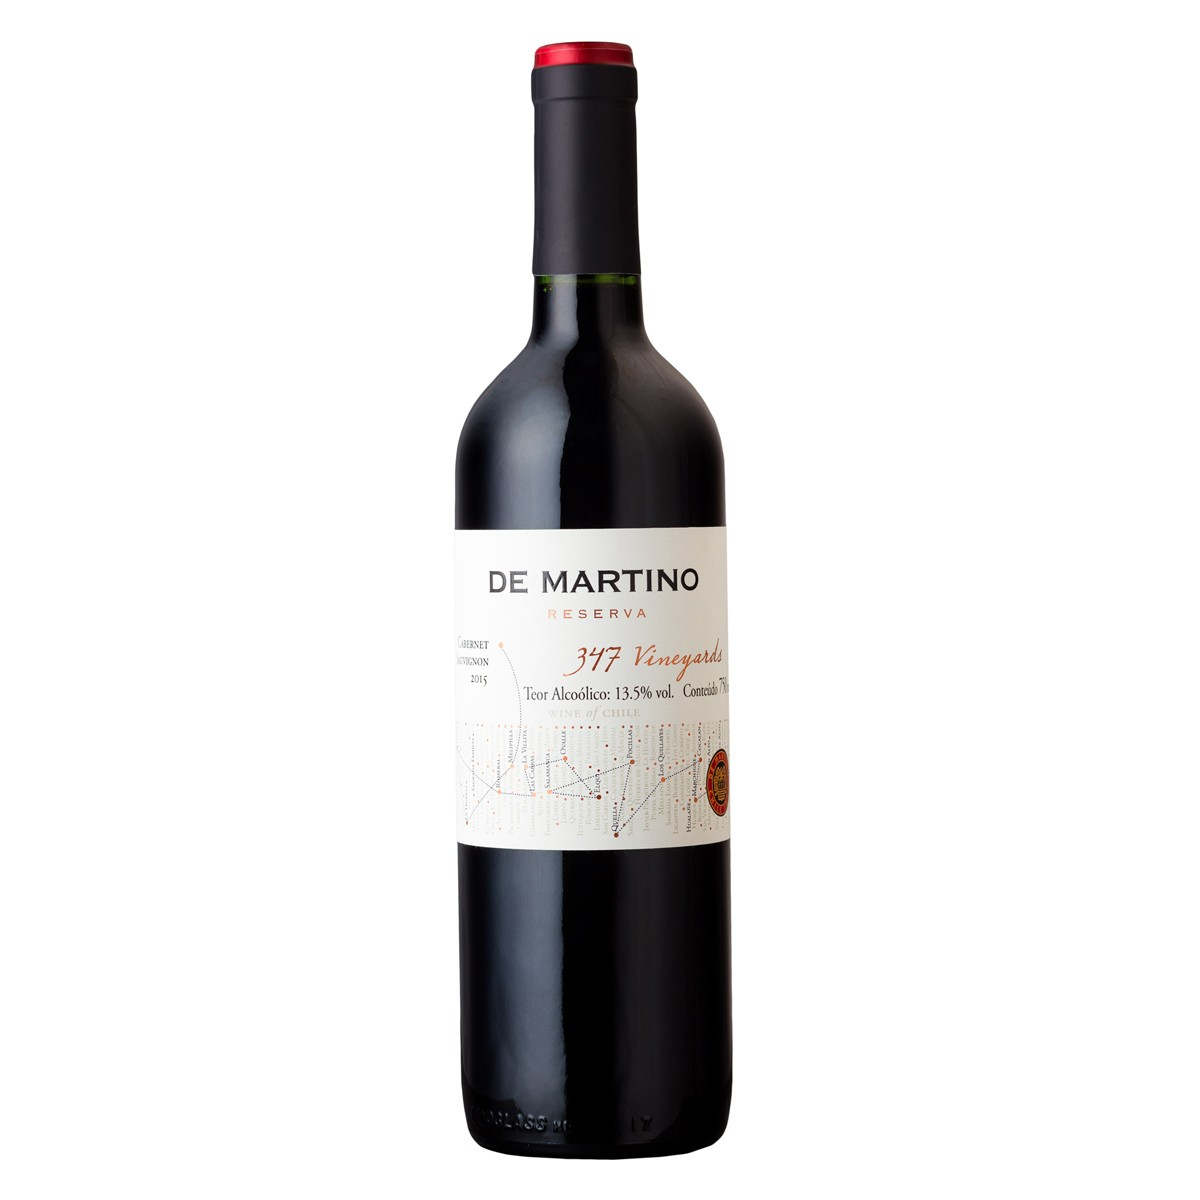 De Martino Cabernet Sauvignon Reserva 347 Vineyards